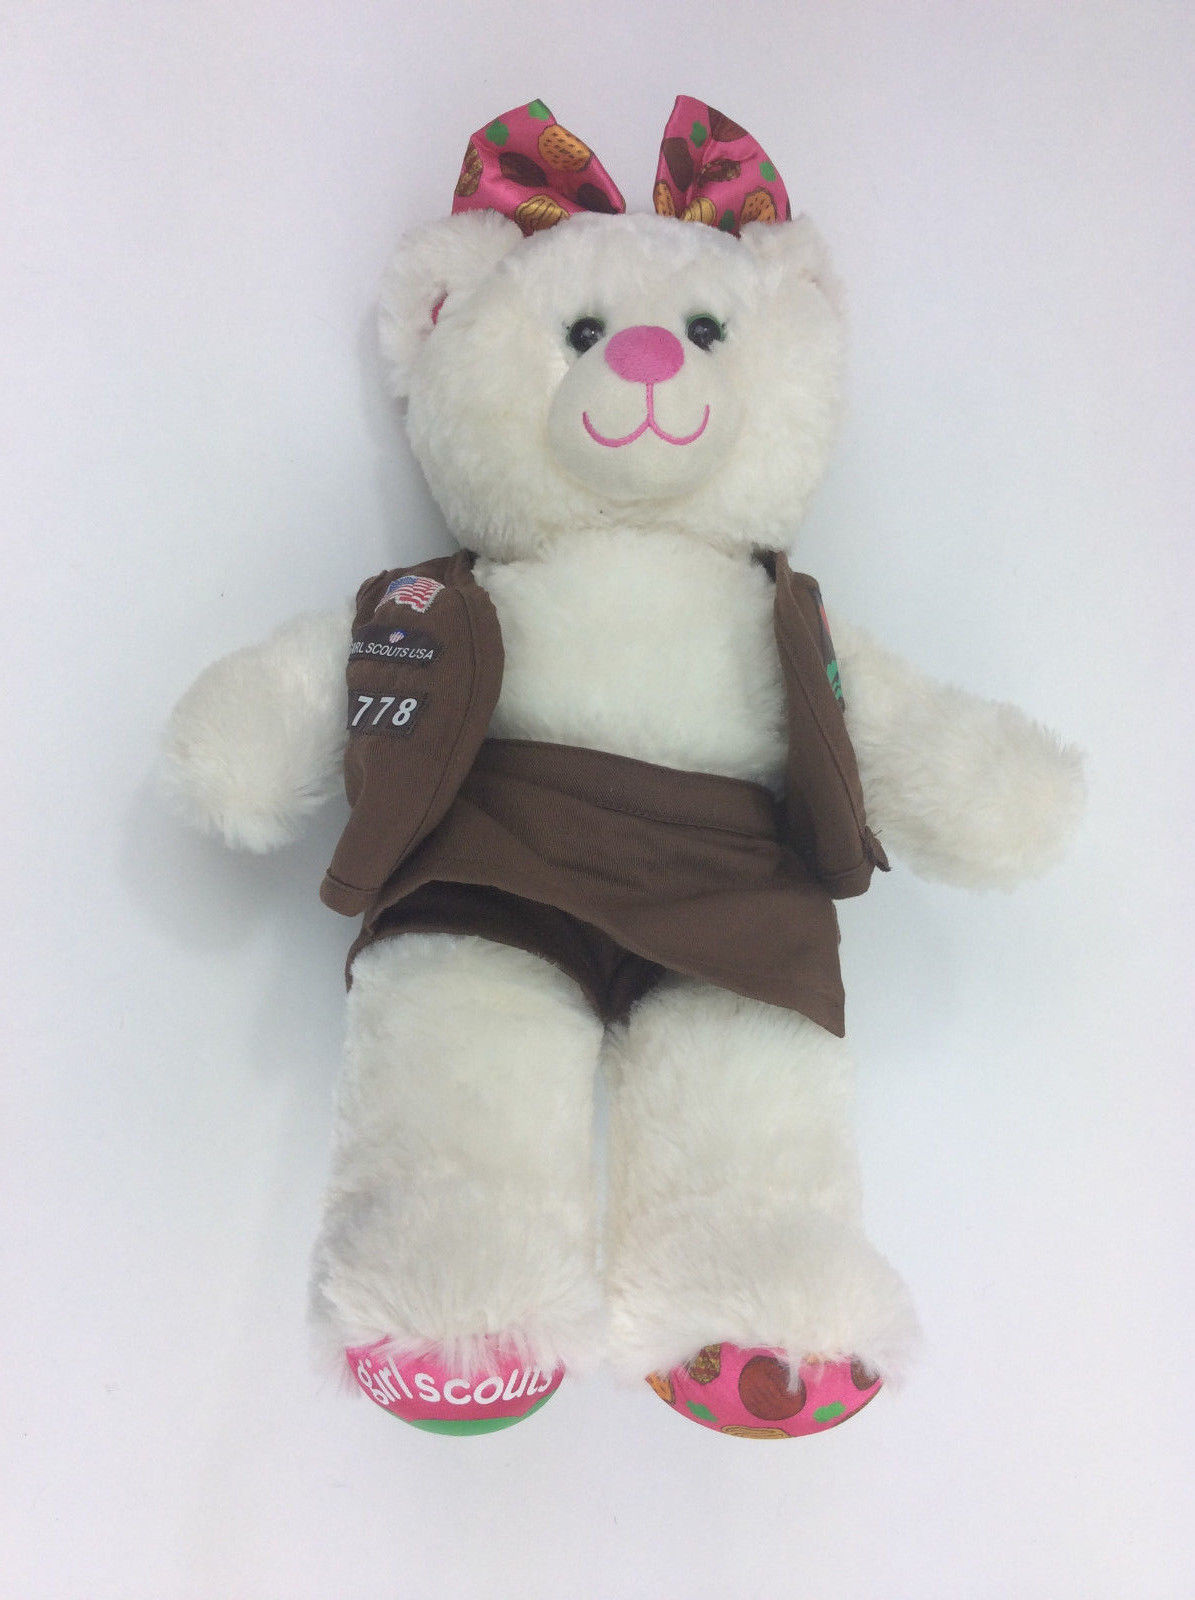 Build A Bear Girl Scouts White Vest  Skort Bow Pink Plush Stuffed Animal 18""